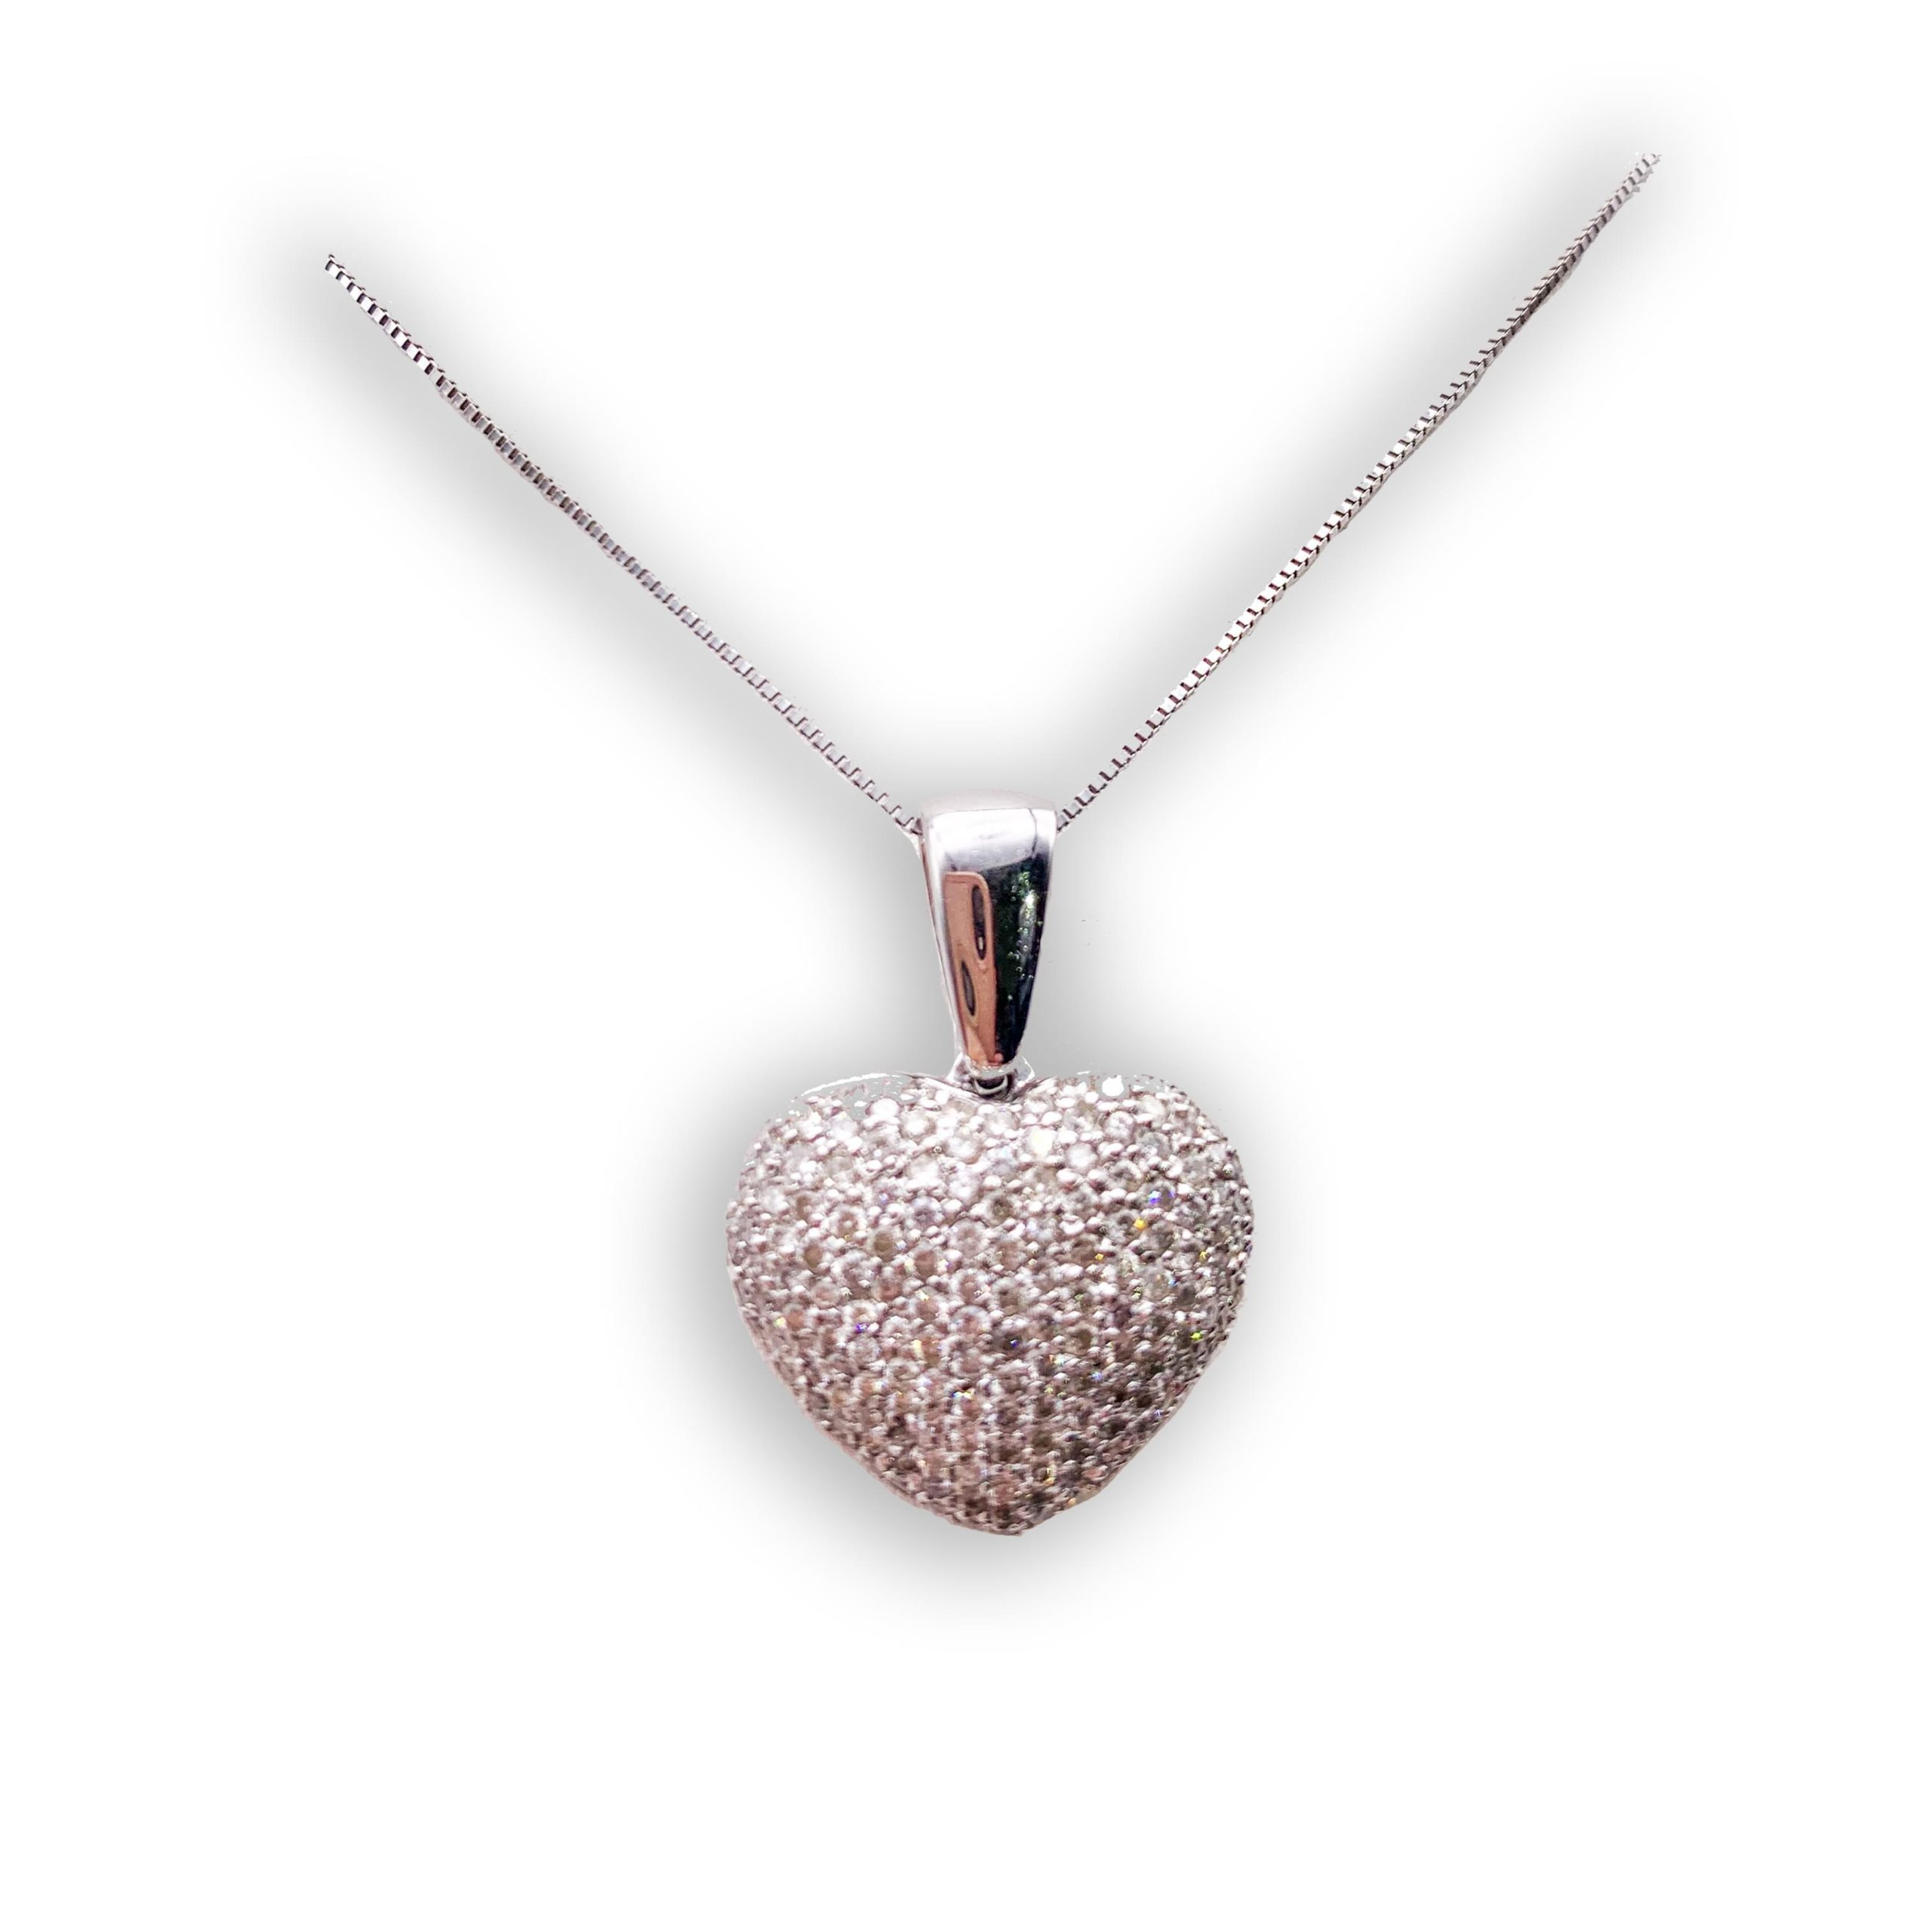 Jewelry store in Carmel CA. Diamond Pave Heart Pendant Carmel by the Sea. Fine jewelry and estate jewelry.